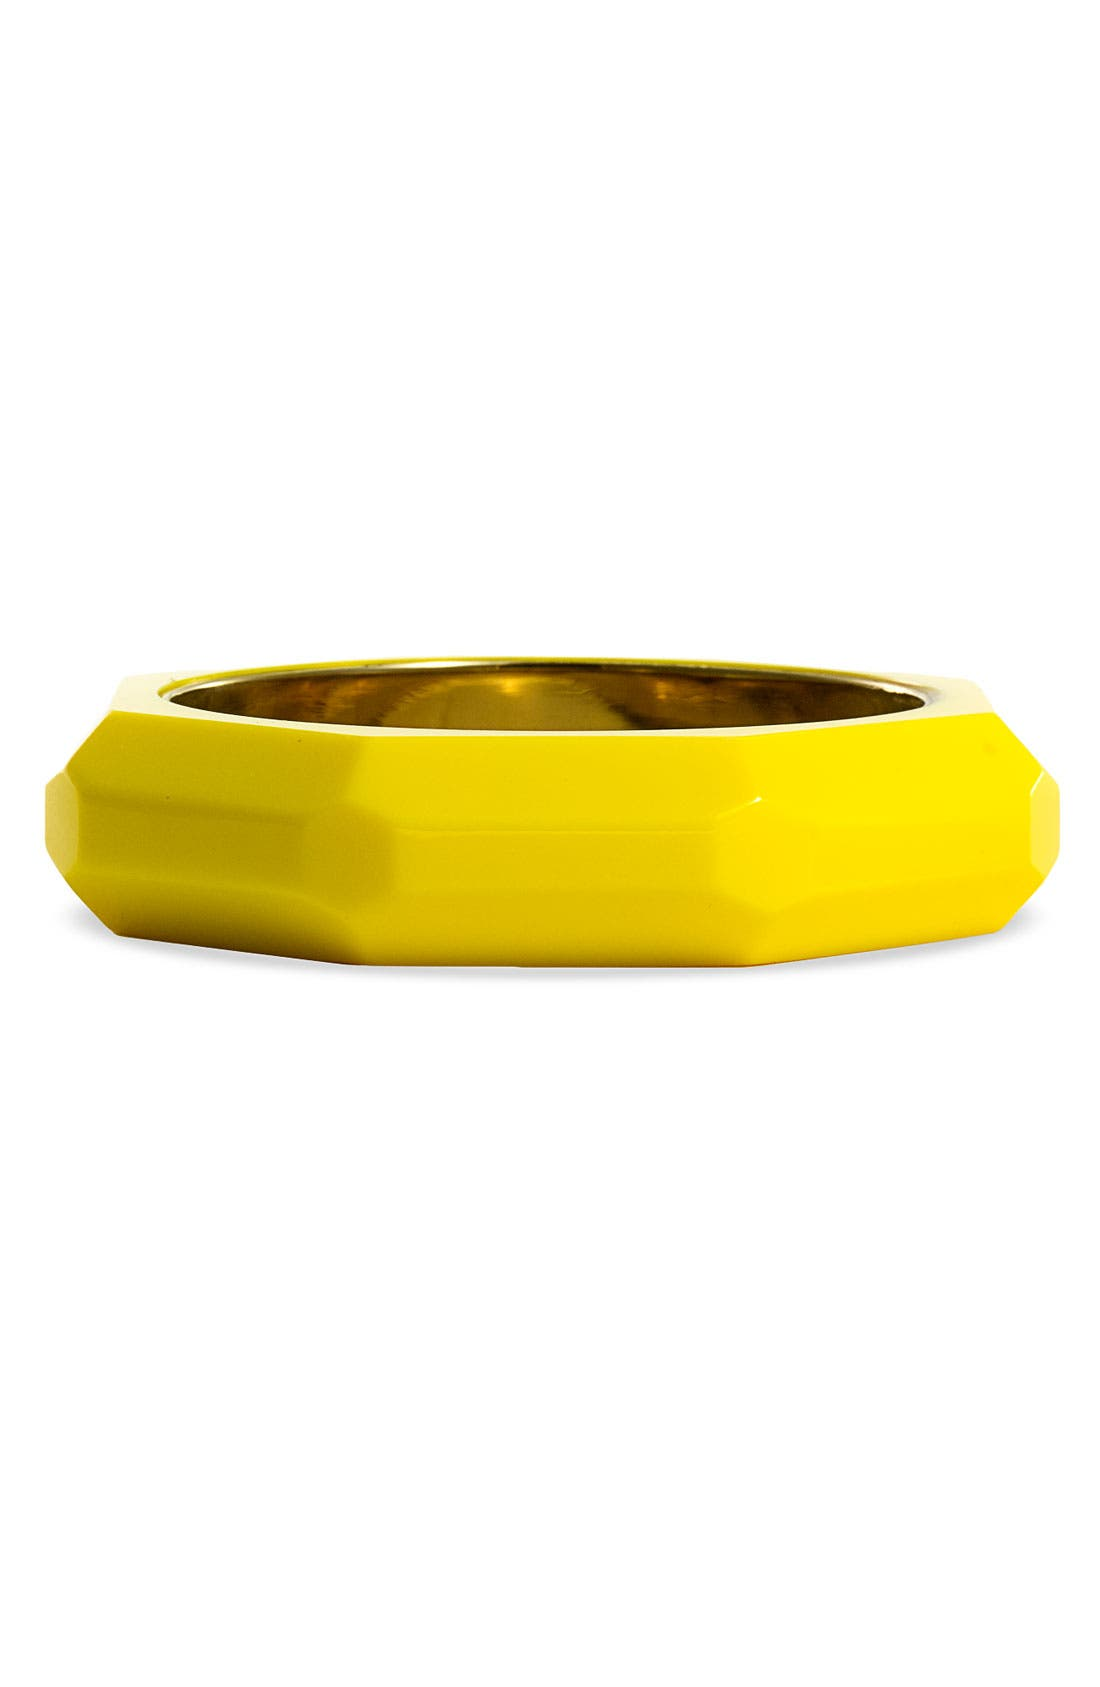 Alternate Image 1 Selected - kate spade new york 'triple threat' faceted bangle